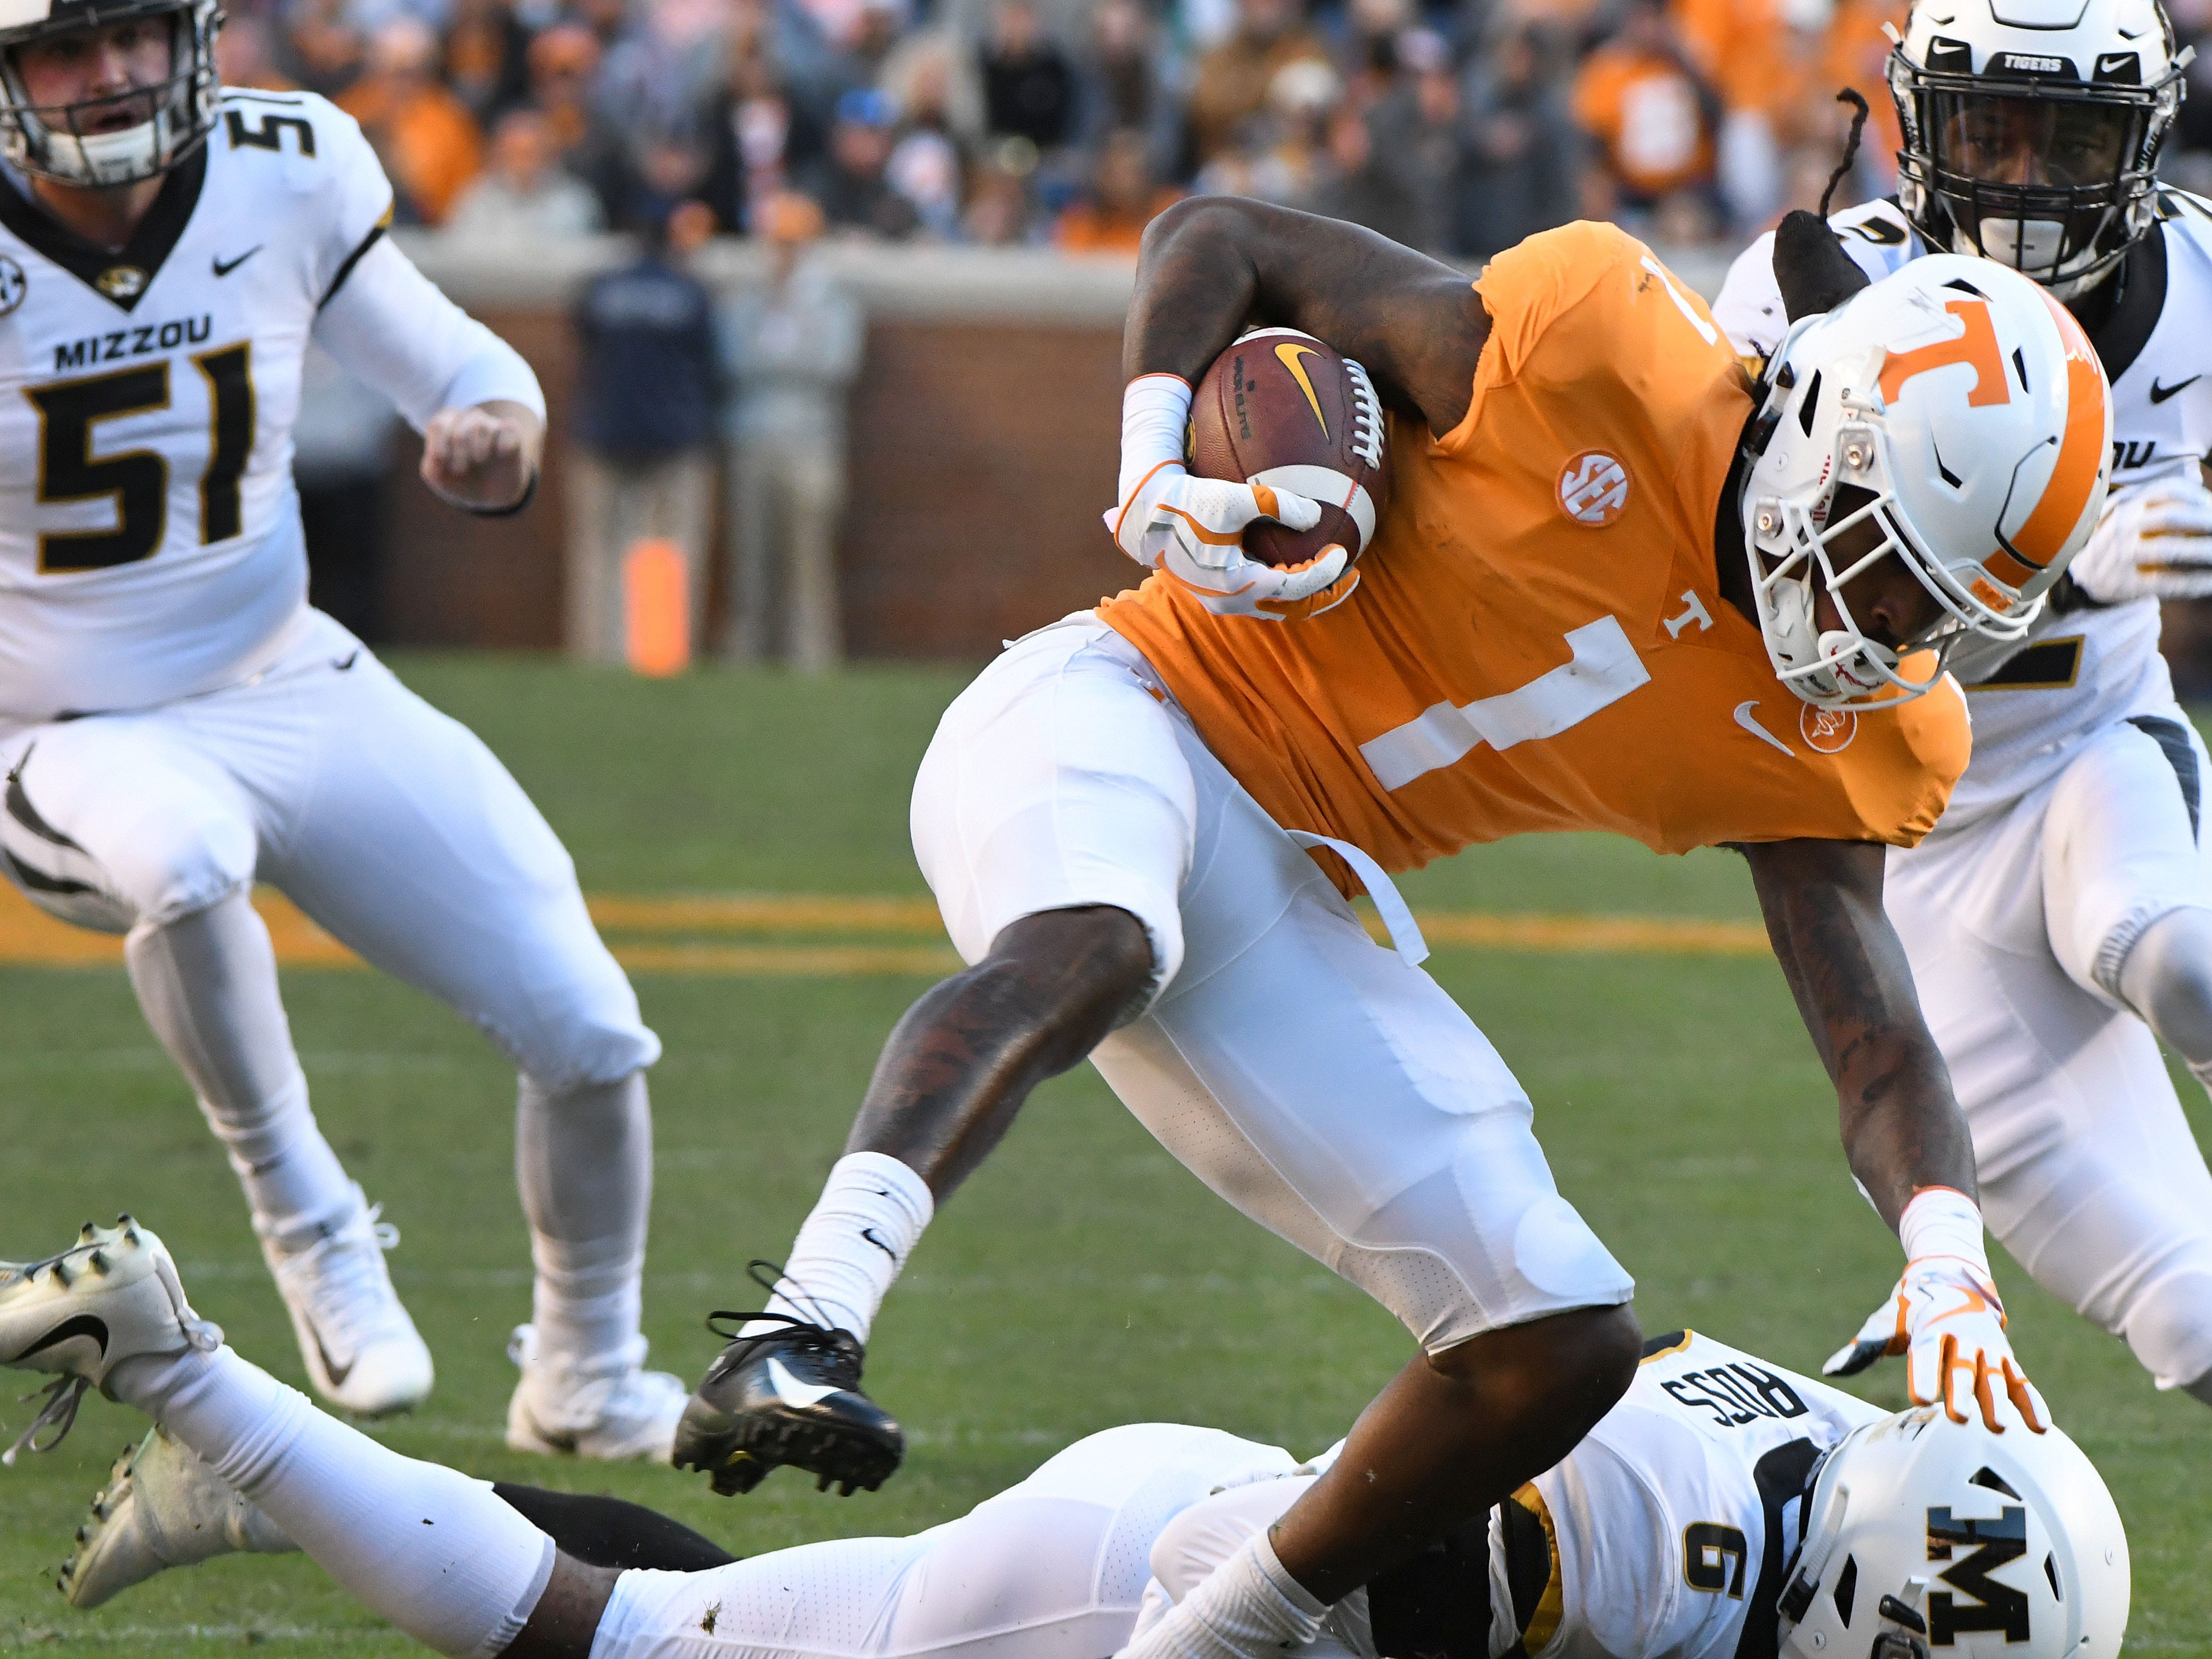 Tennessee wide receiver Marquez Callaway (1) on a kick return during first half action against Missouri Saturday, Nov. 17, 2018 at Neyland Stadium in Knoxville, Tenn.